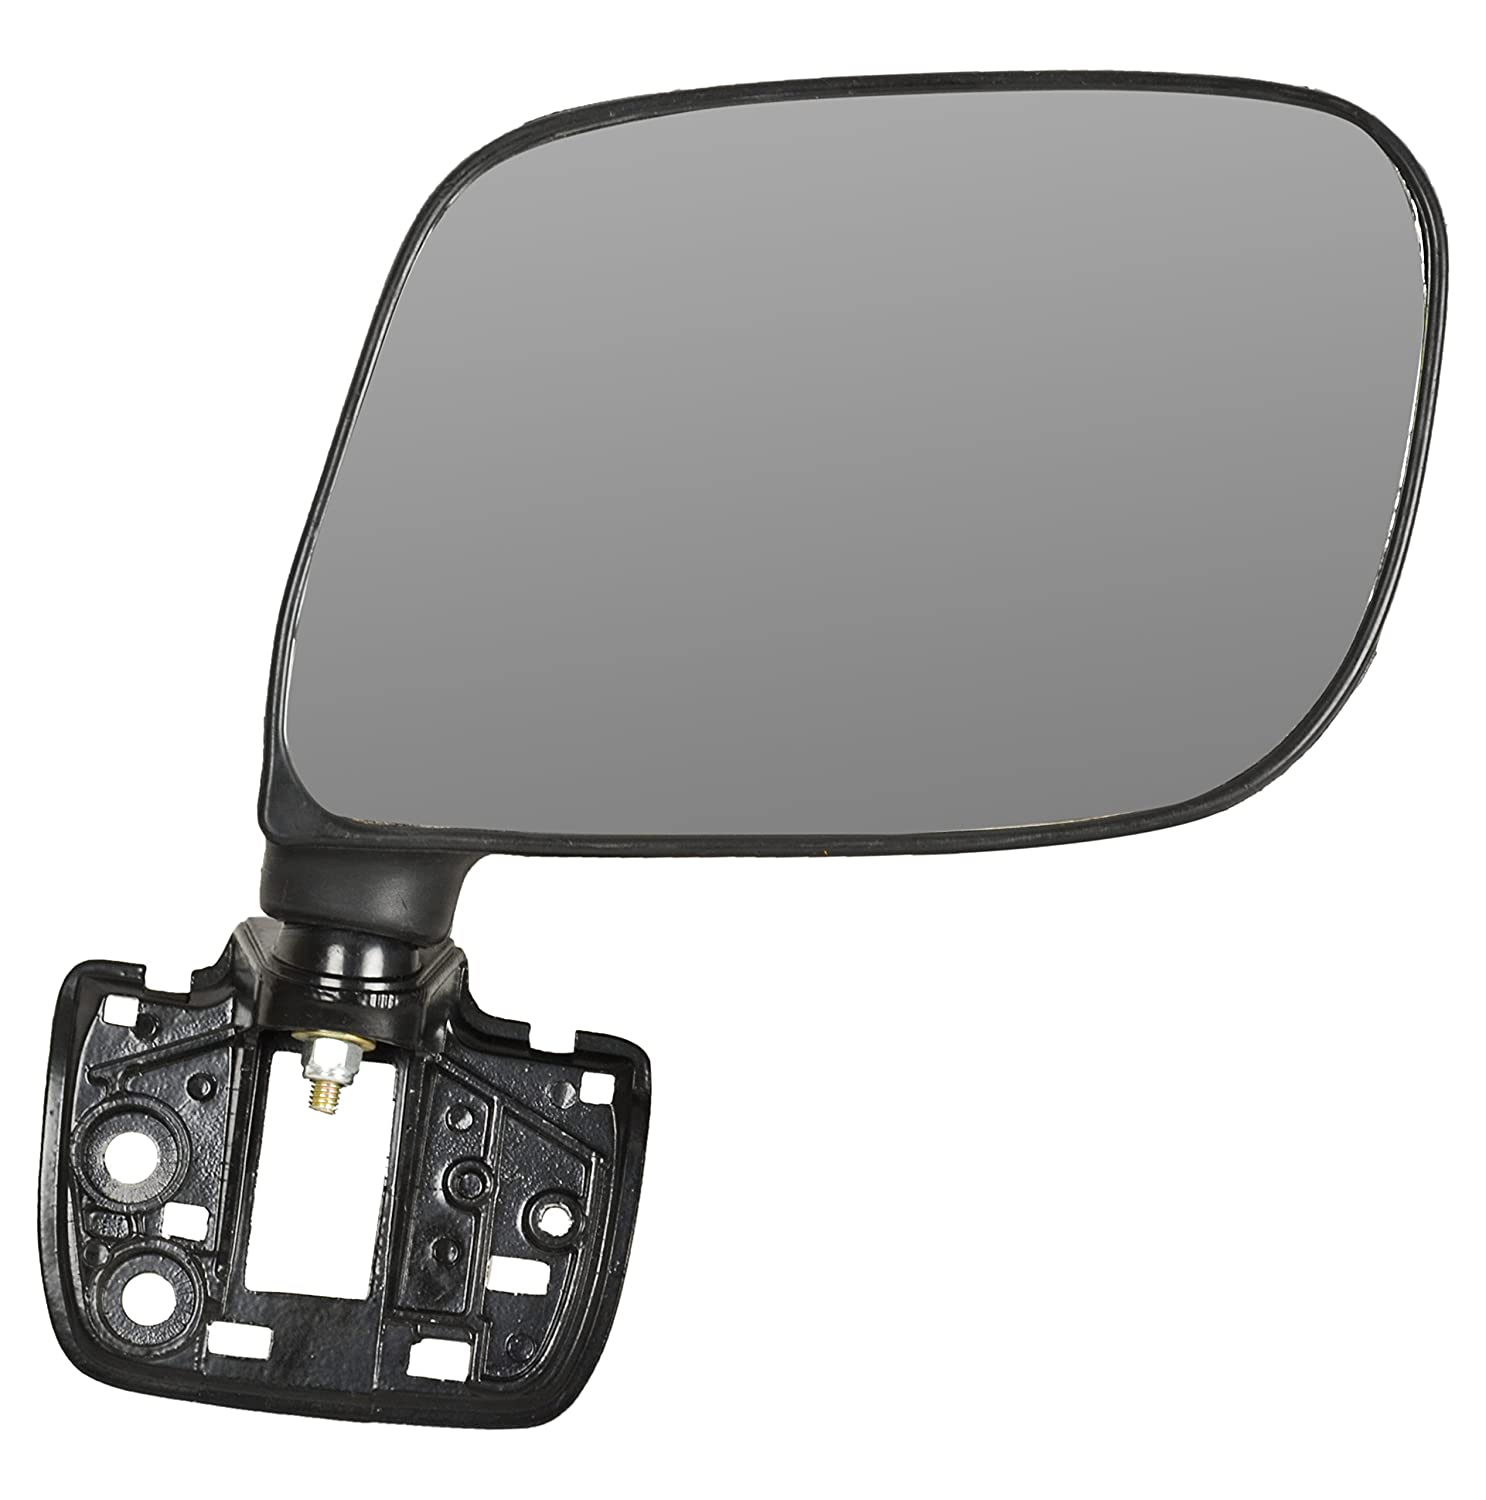 Modern right side view mirror for maruti zen estilo amazon in car motorbike